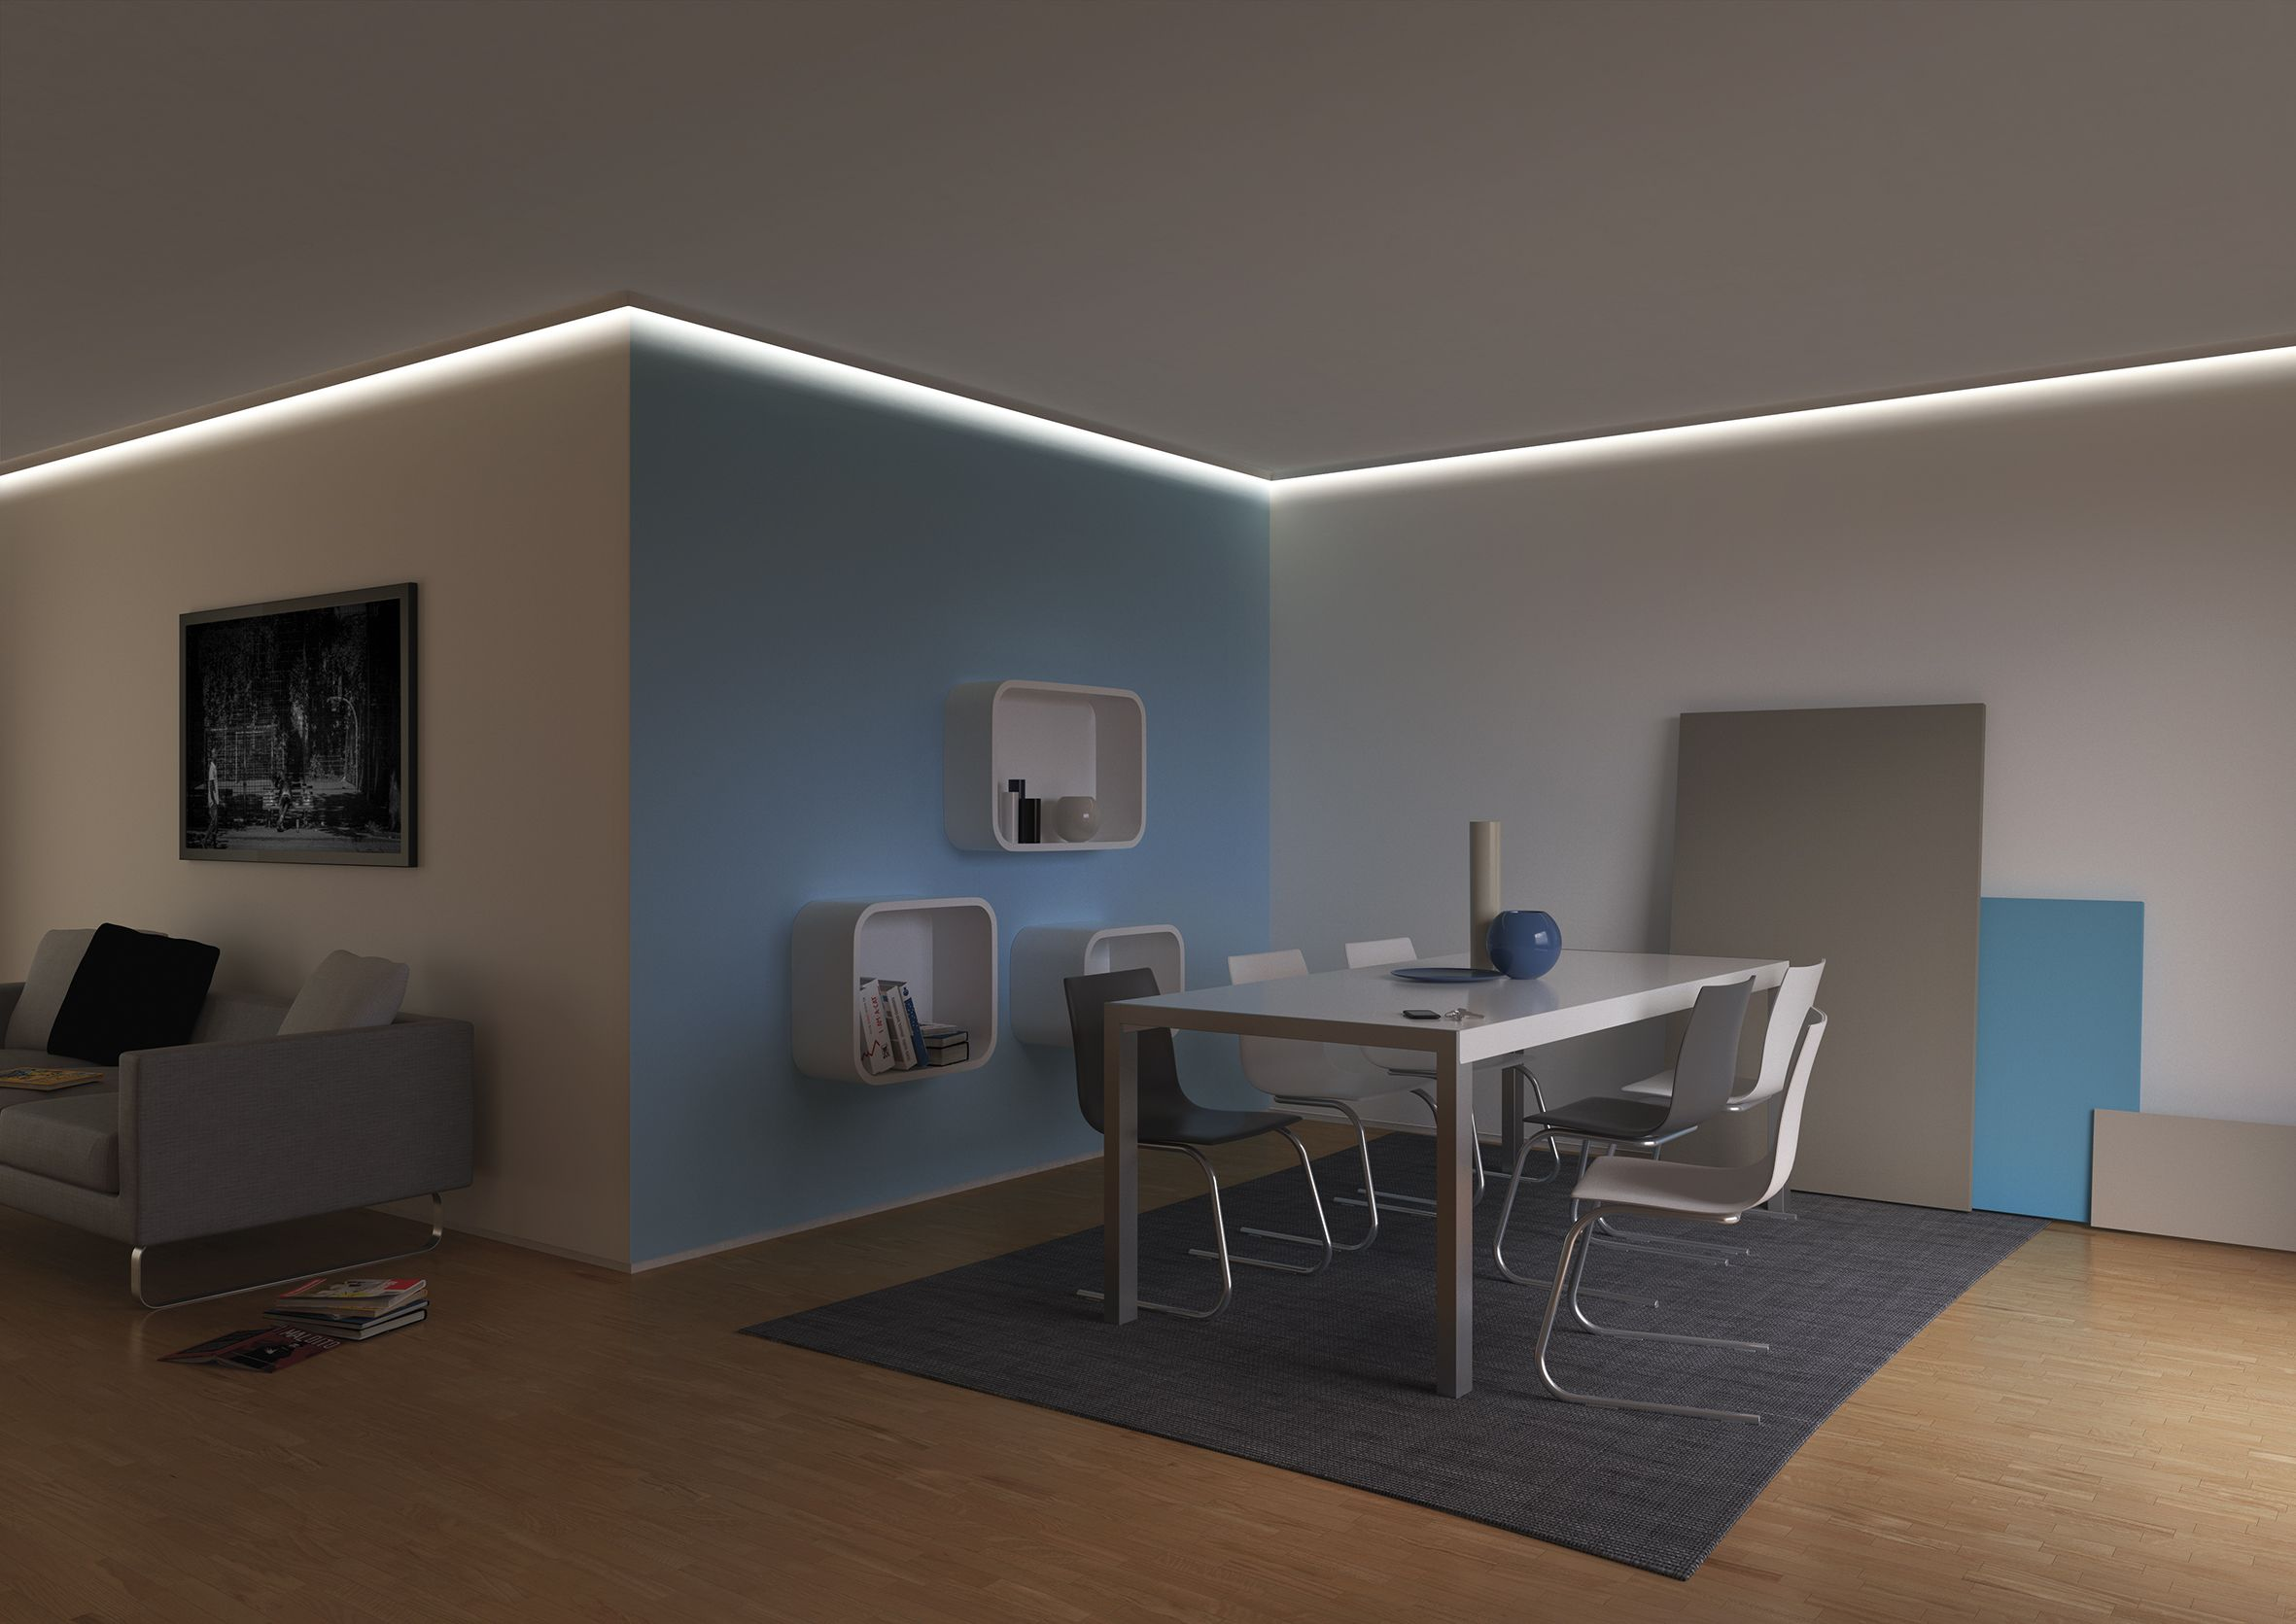 Lowered Ceiling With Indirect Lighting Effect